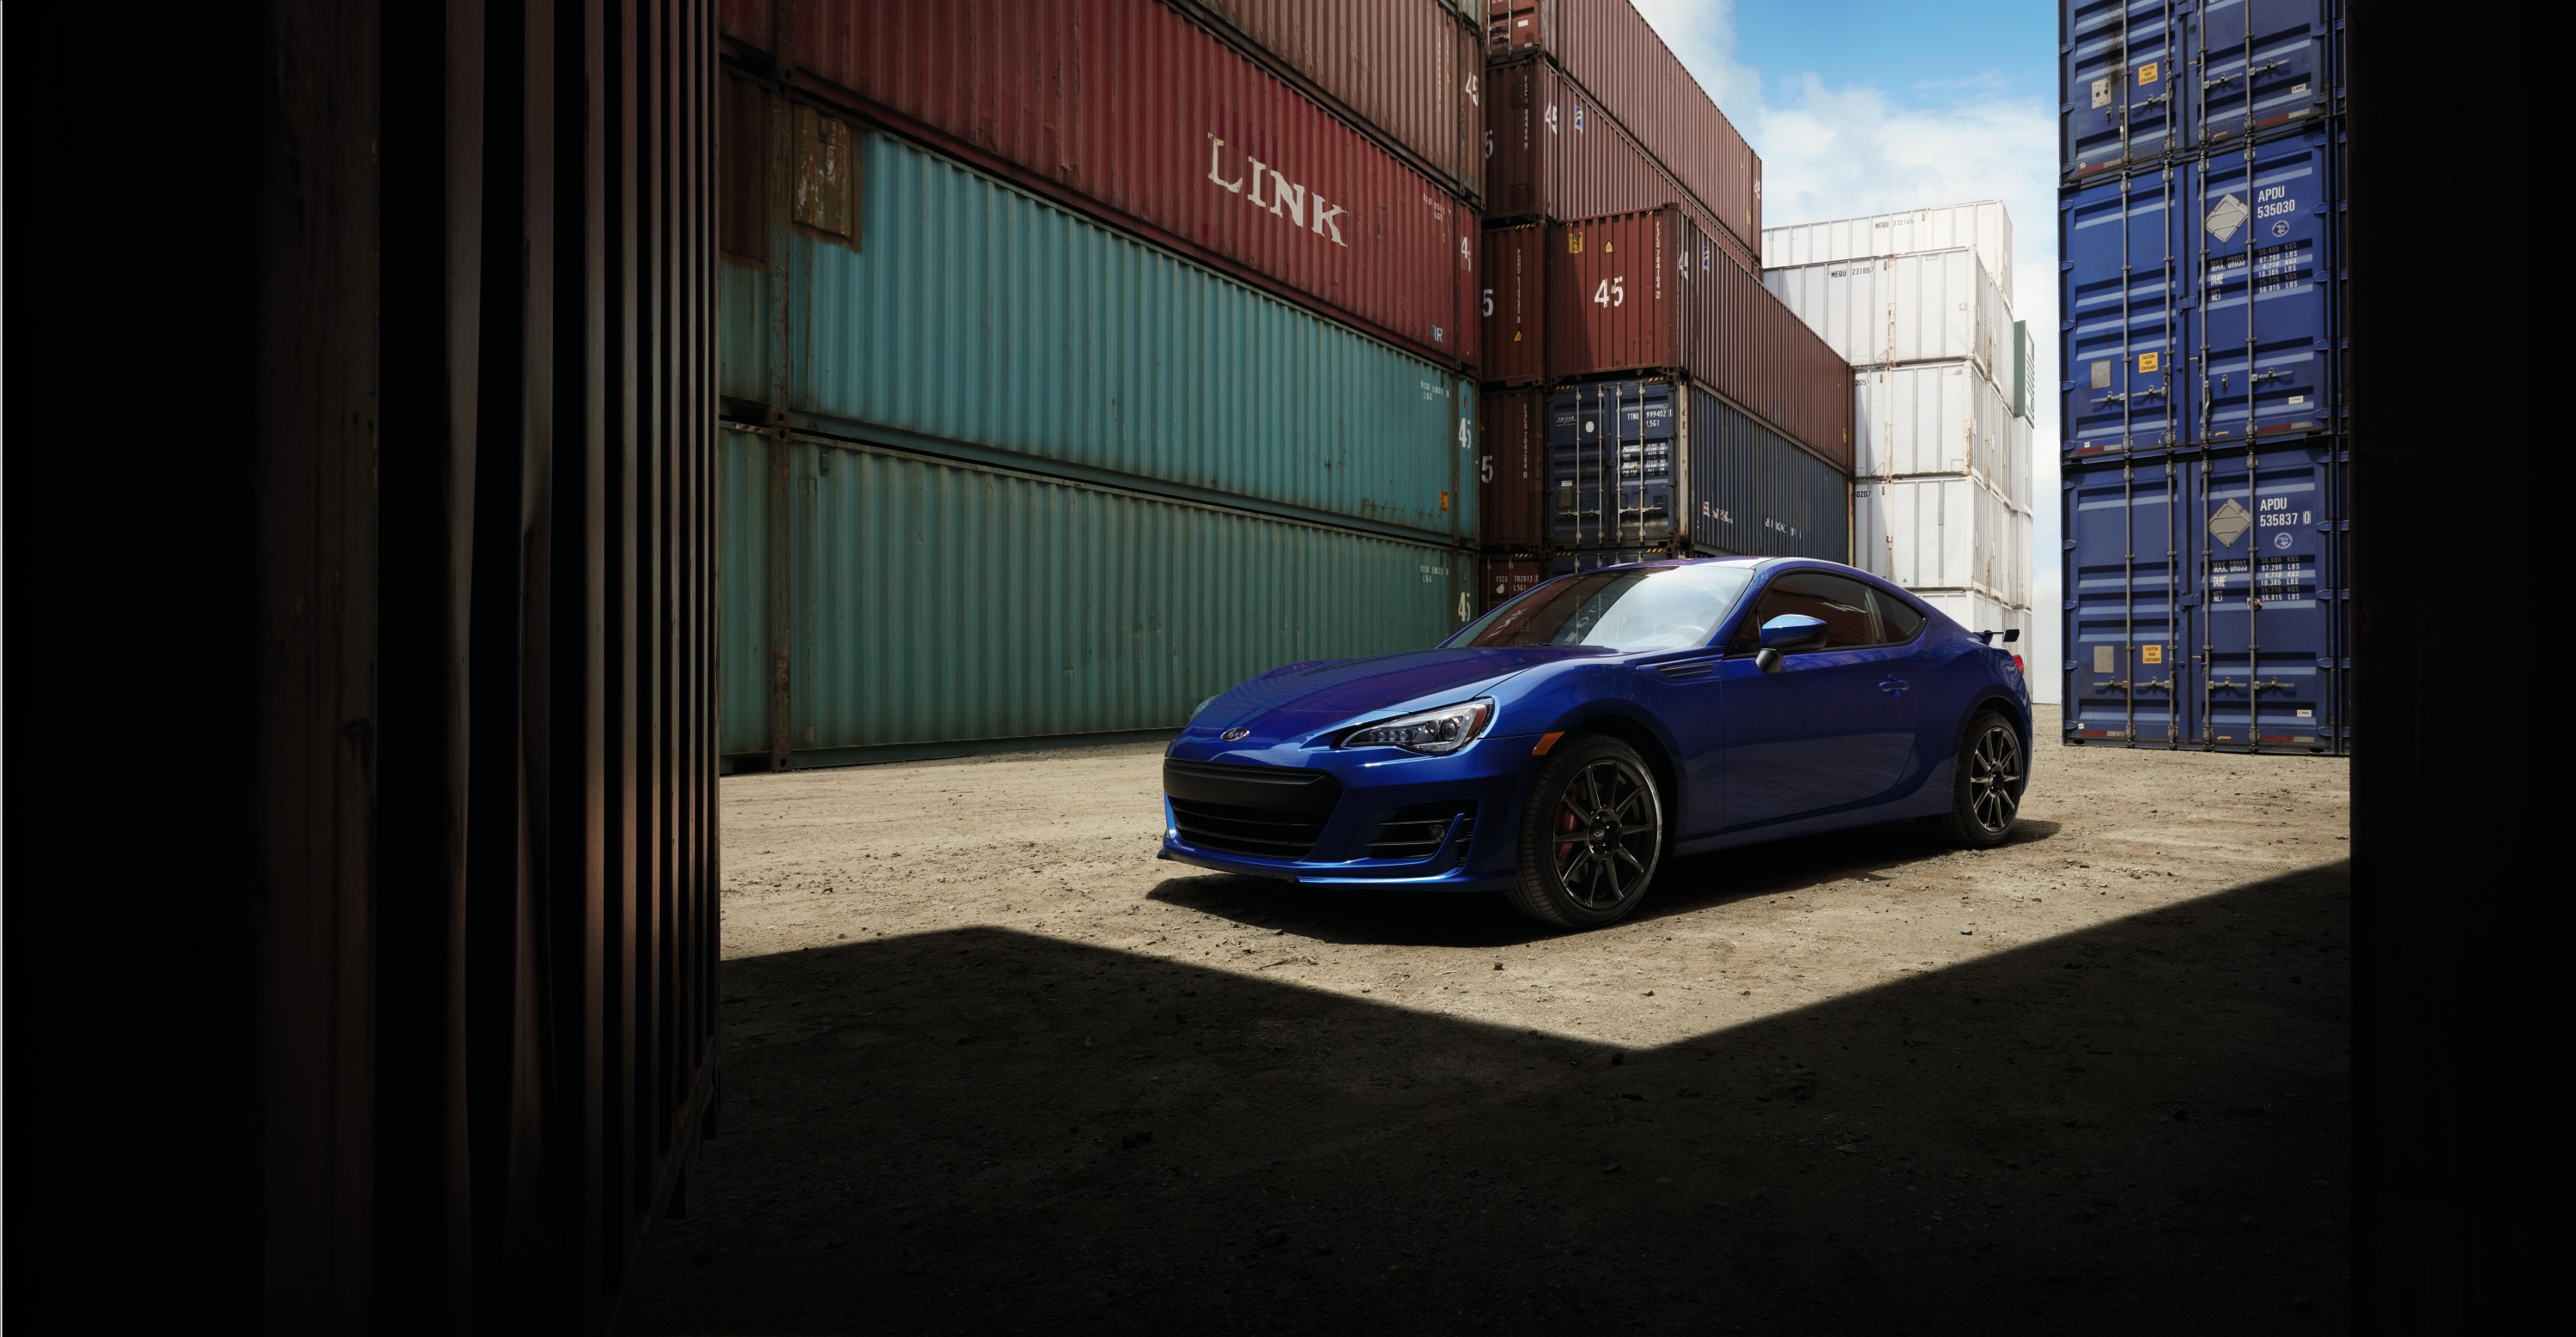 The 2017 Subaru Brz Features A New Magellan Navigation For Starlink System